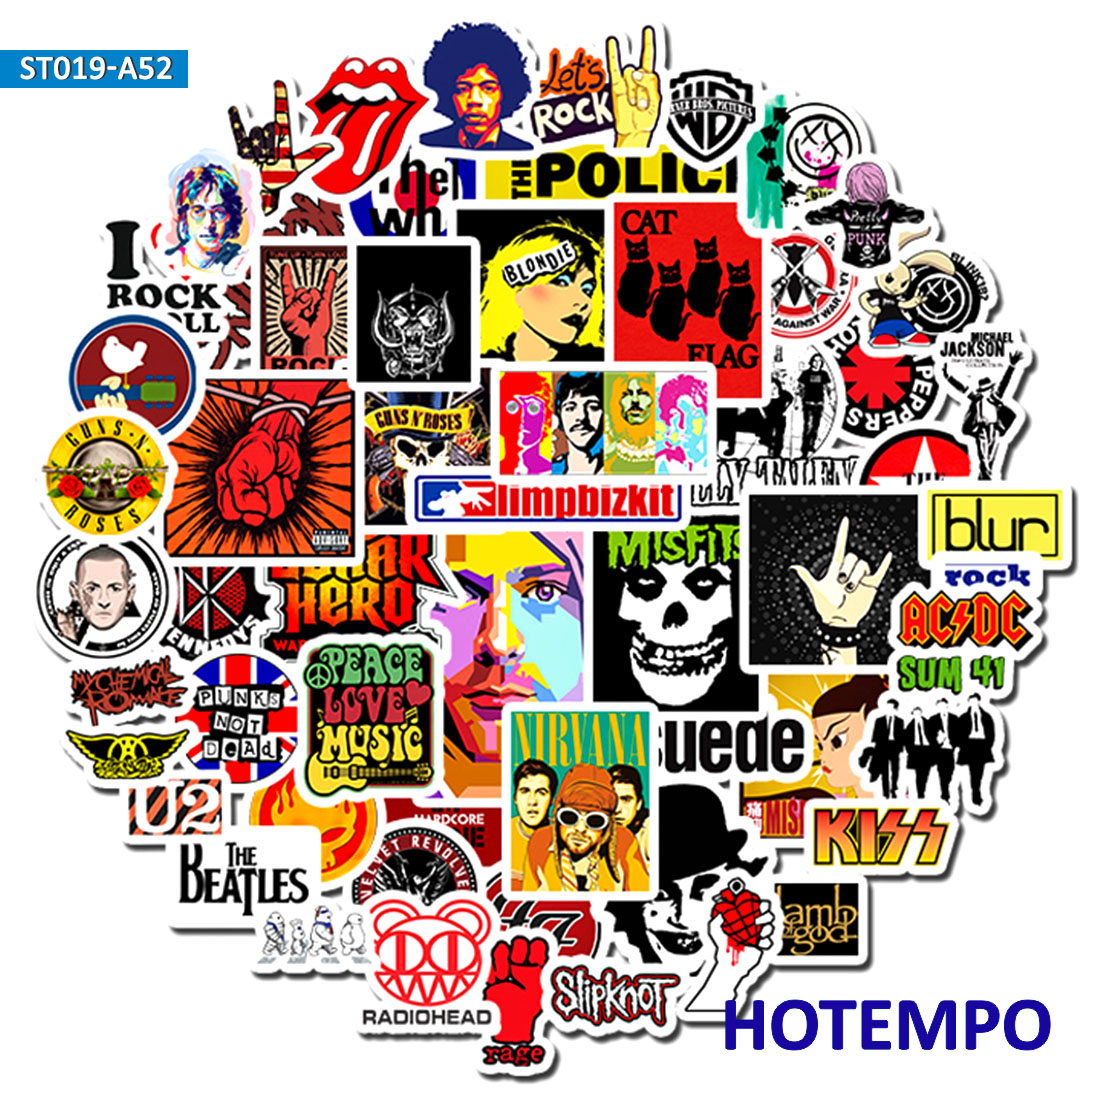 52PCS  Rock And Roll Punk Music Band Stickers For Mobile Phone Laptop Luggage Guitar Case Skateboard Bike Car Stickers R